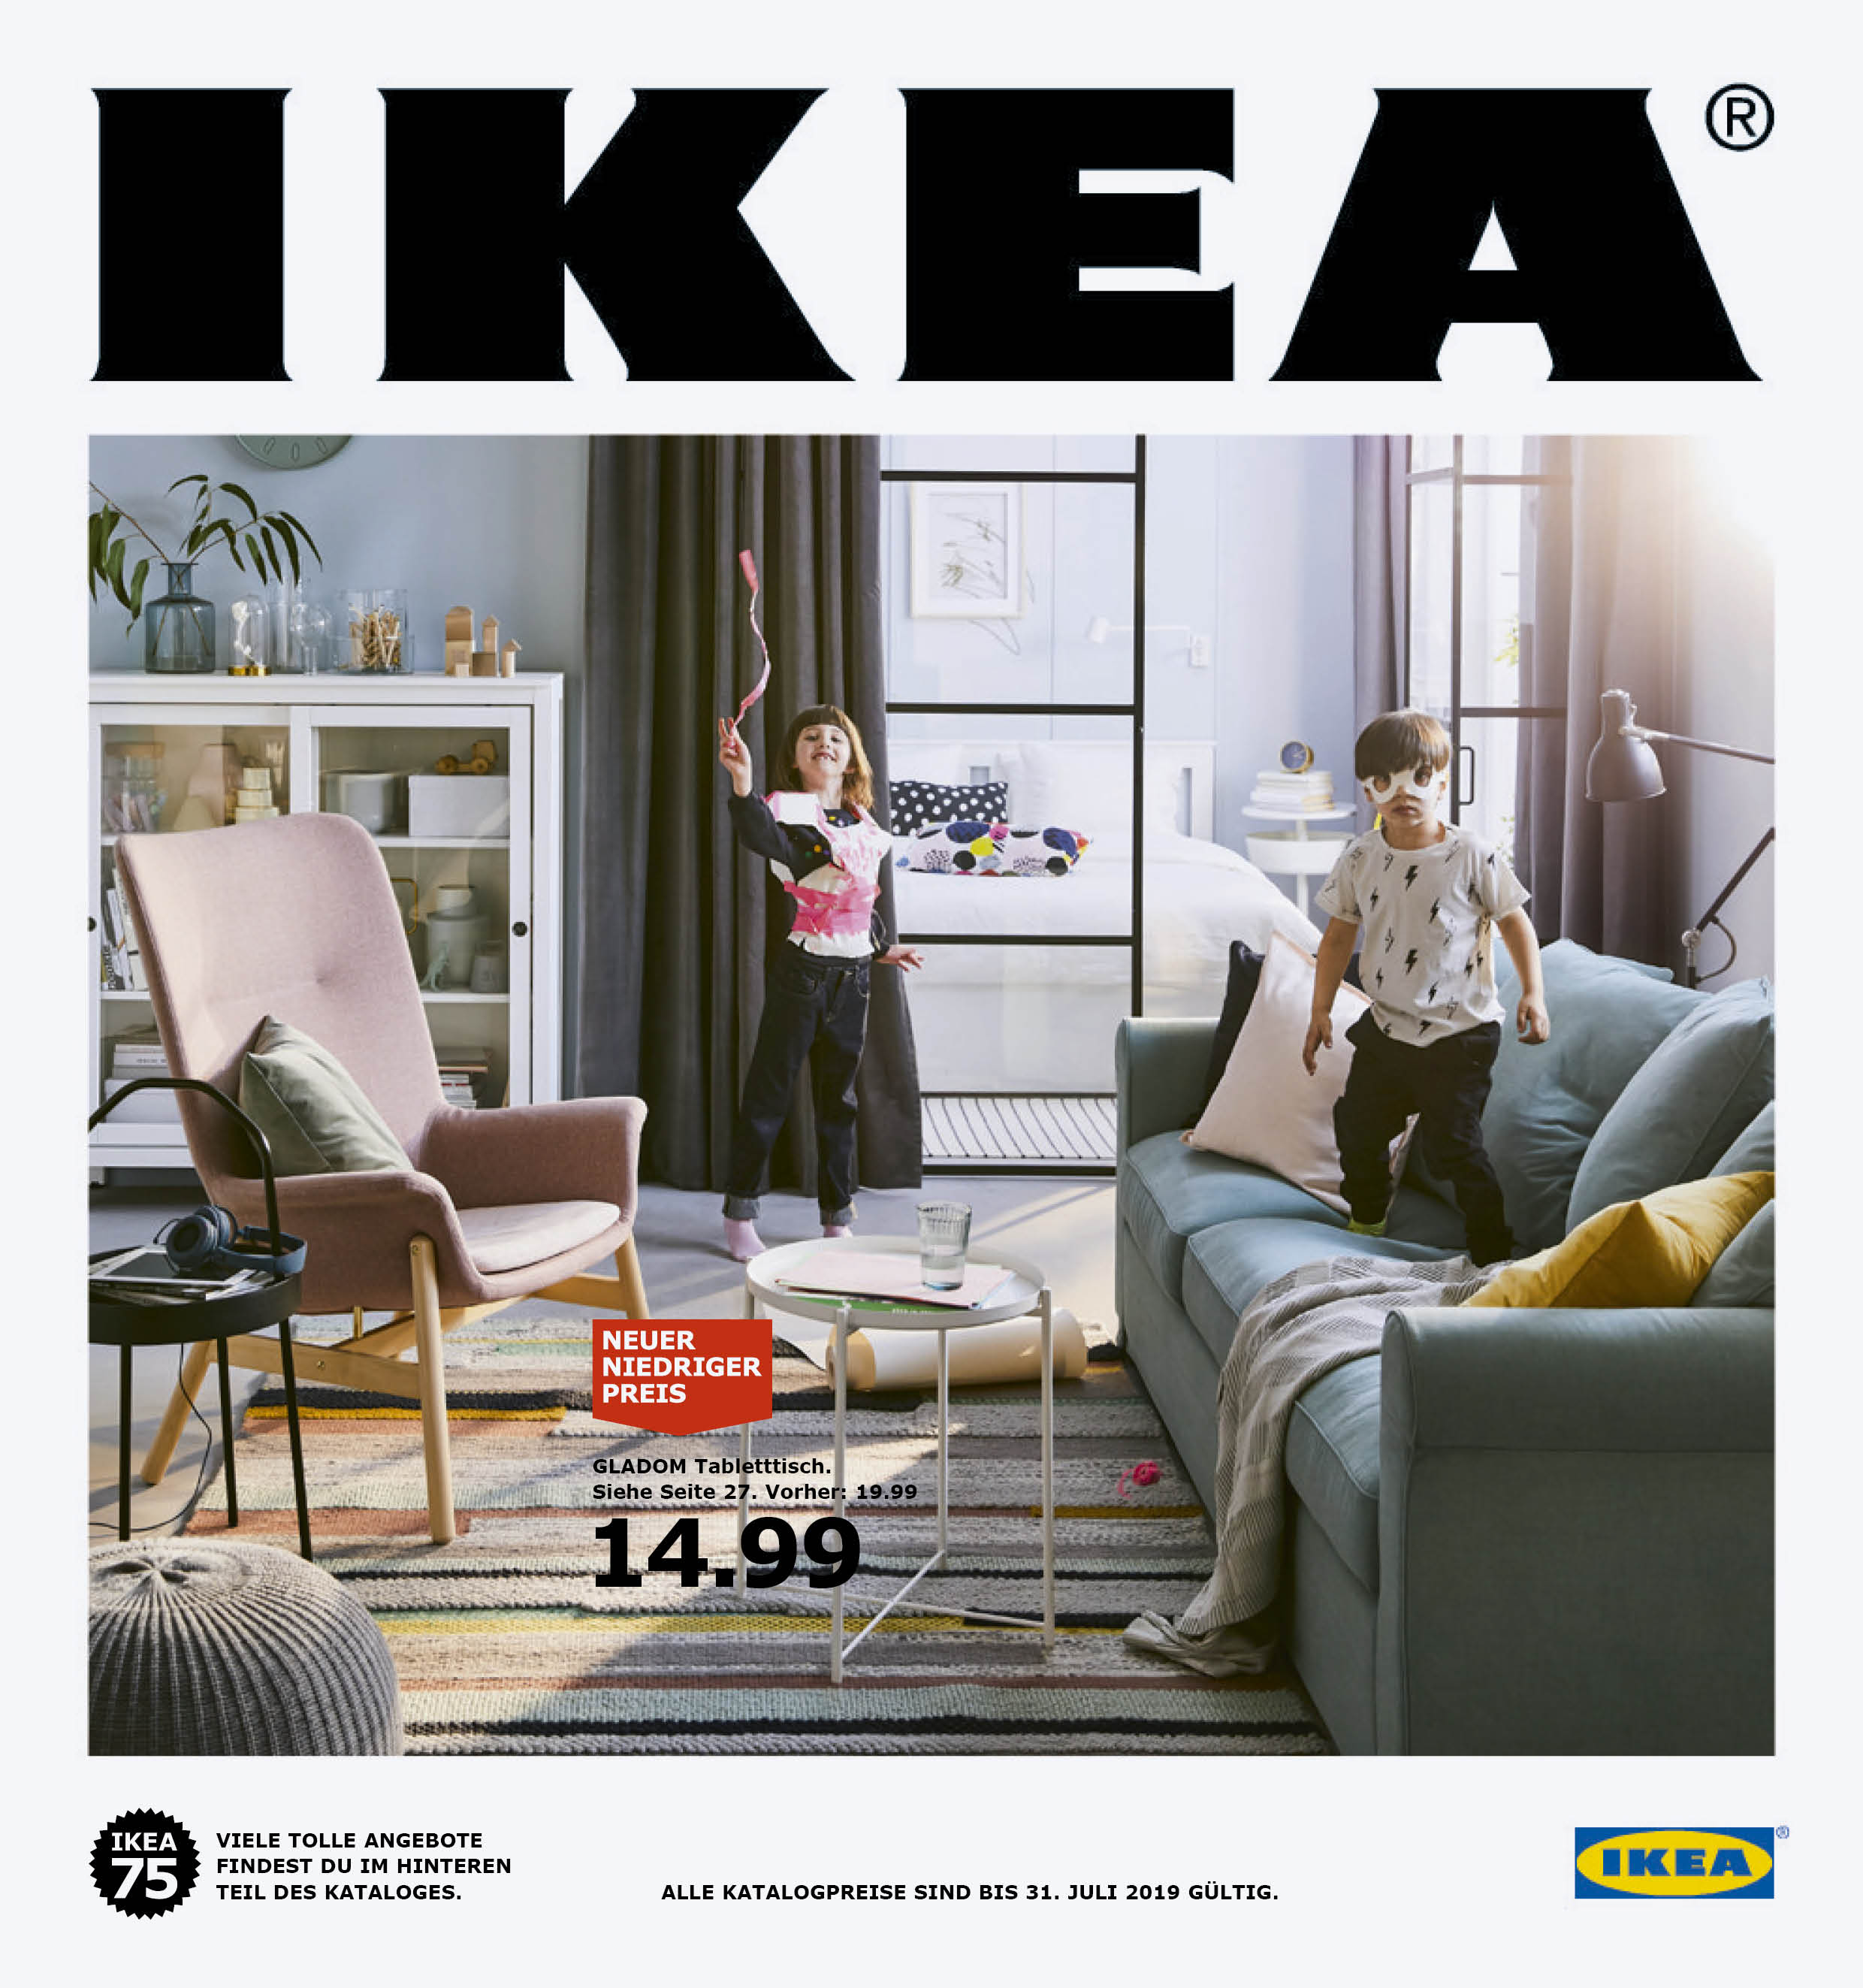 inspiration f r ein einzigartiges zuhause der ikea katalog 2019 stellt individuelle. Black Bedroom Furniture Sets. Home Design Ideas